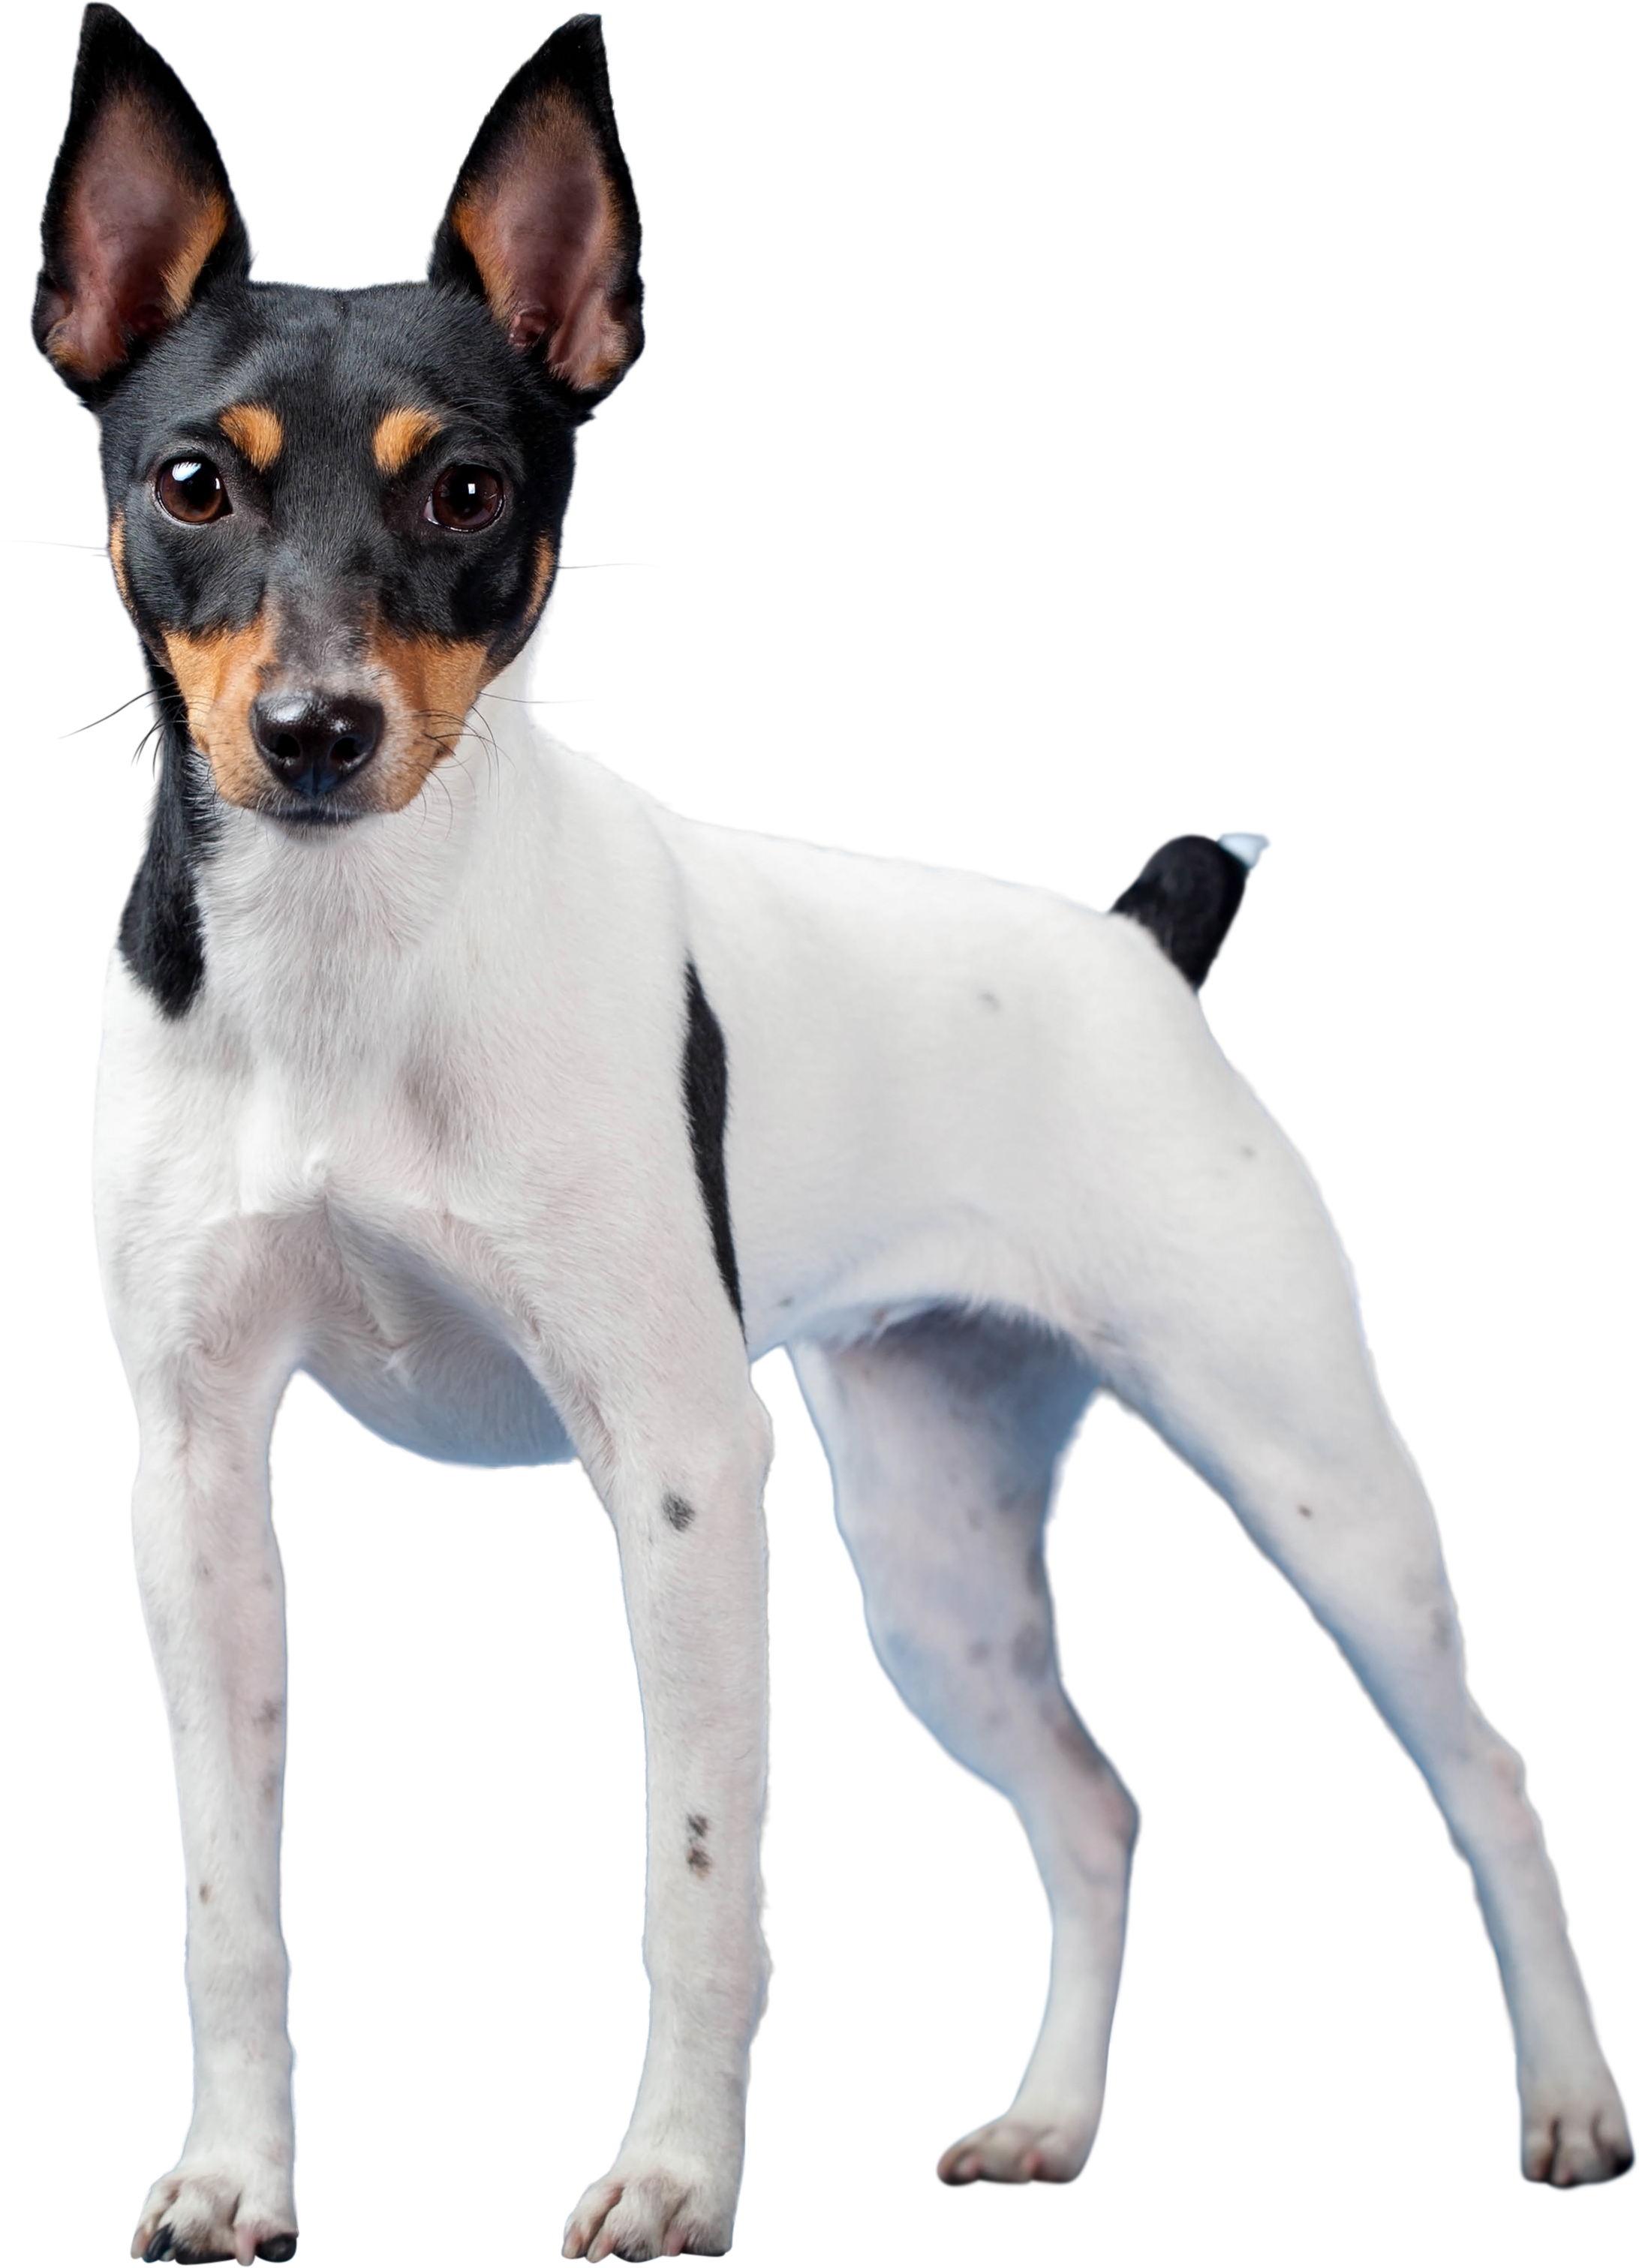 Toy Fox Terrier dog standing in front of white background